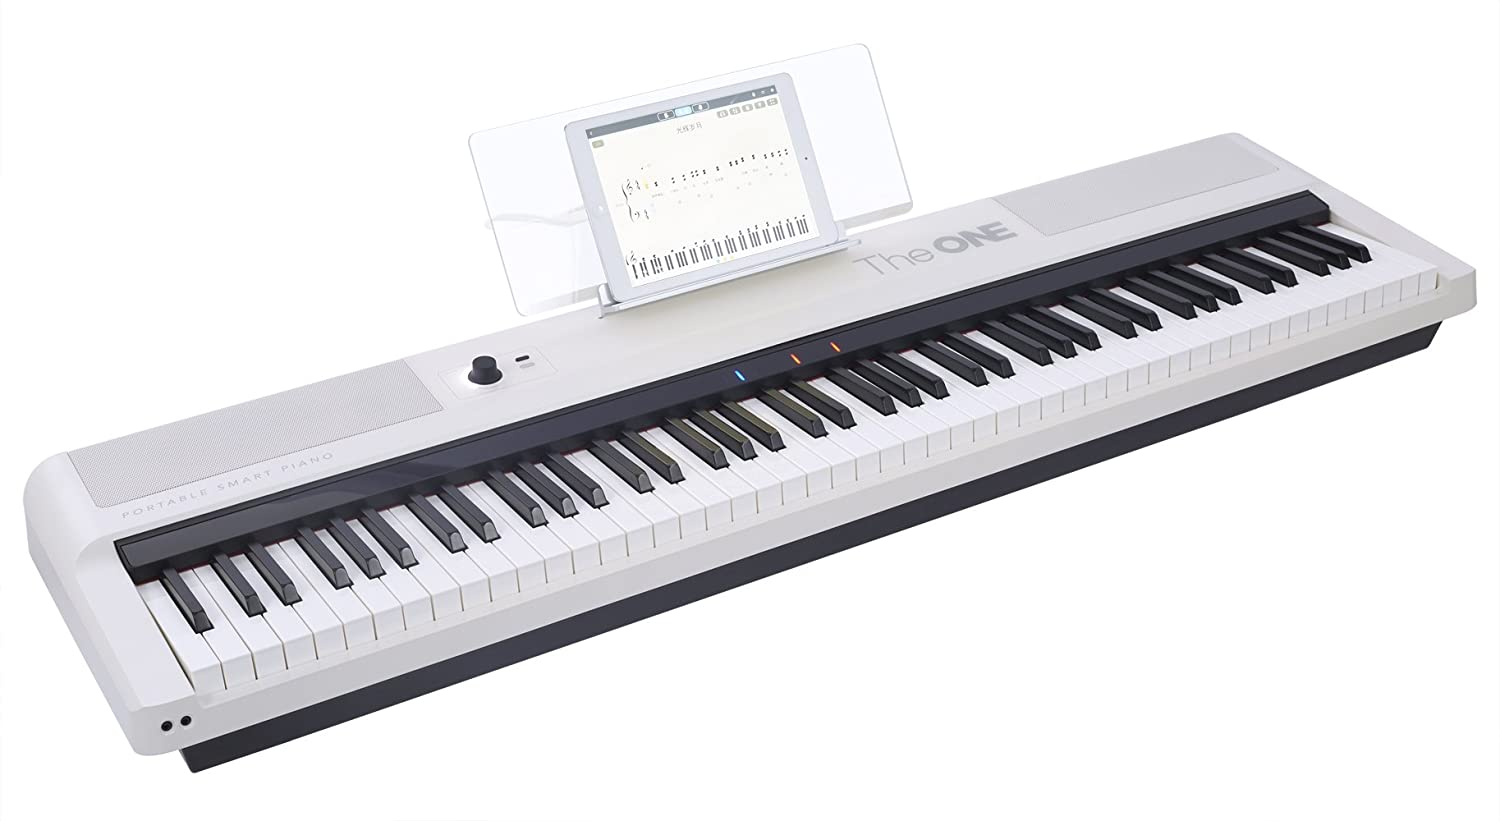 The ONE Smart Keyboard Pro, 88-Key Digital Piano Keyboard, Portable Digital Piano, Weighted Action Keys, White The ONE Music Group TON1W